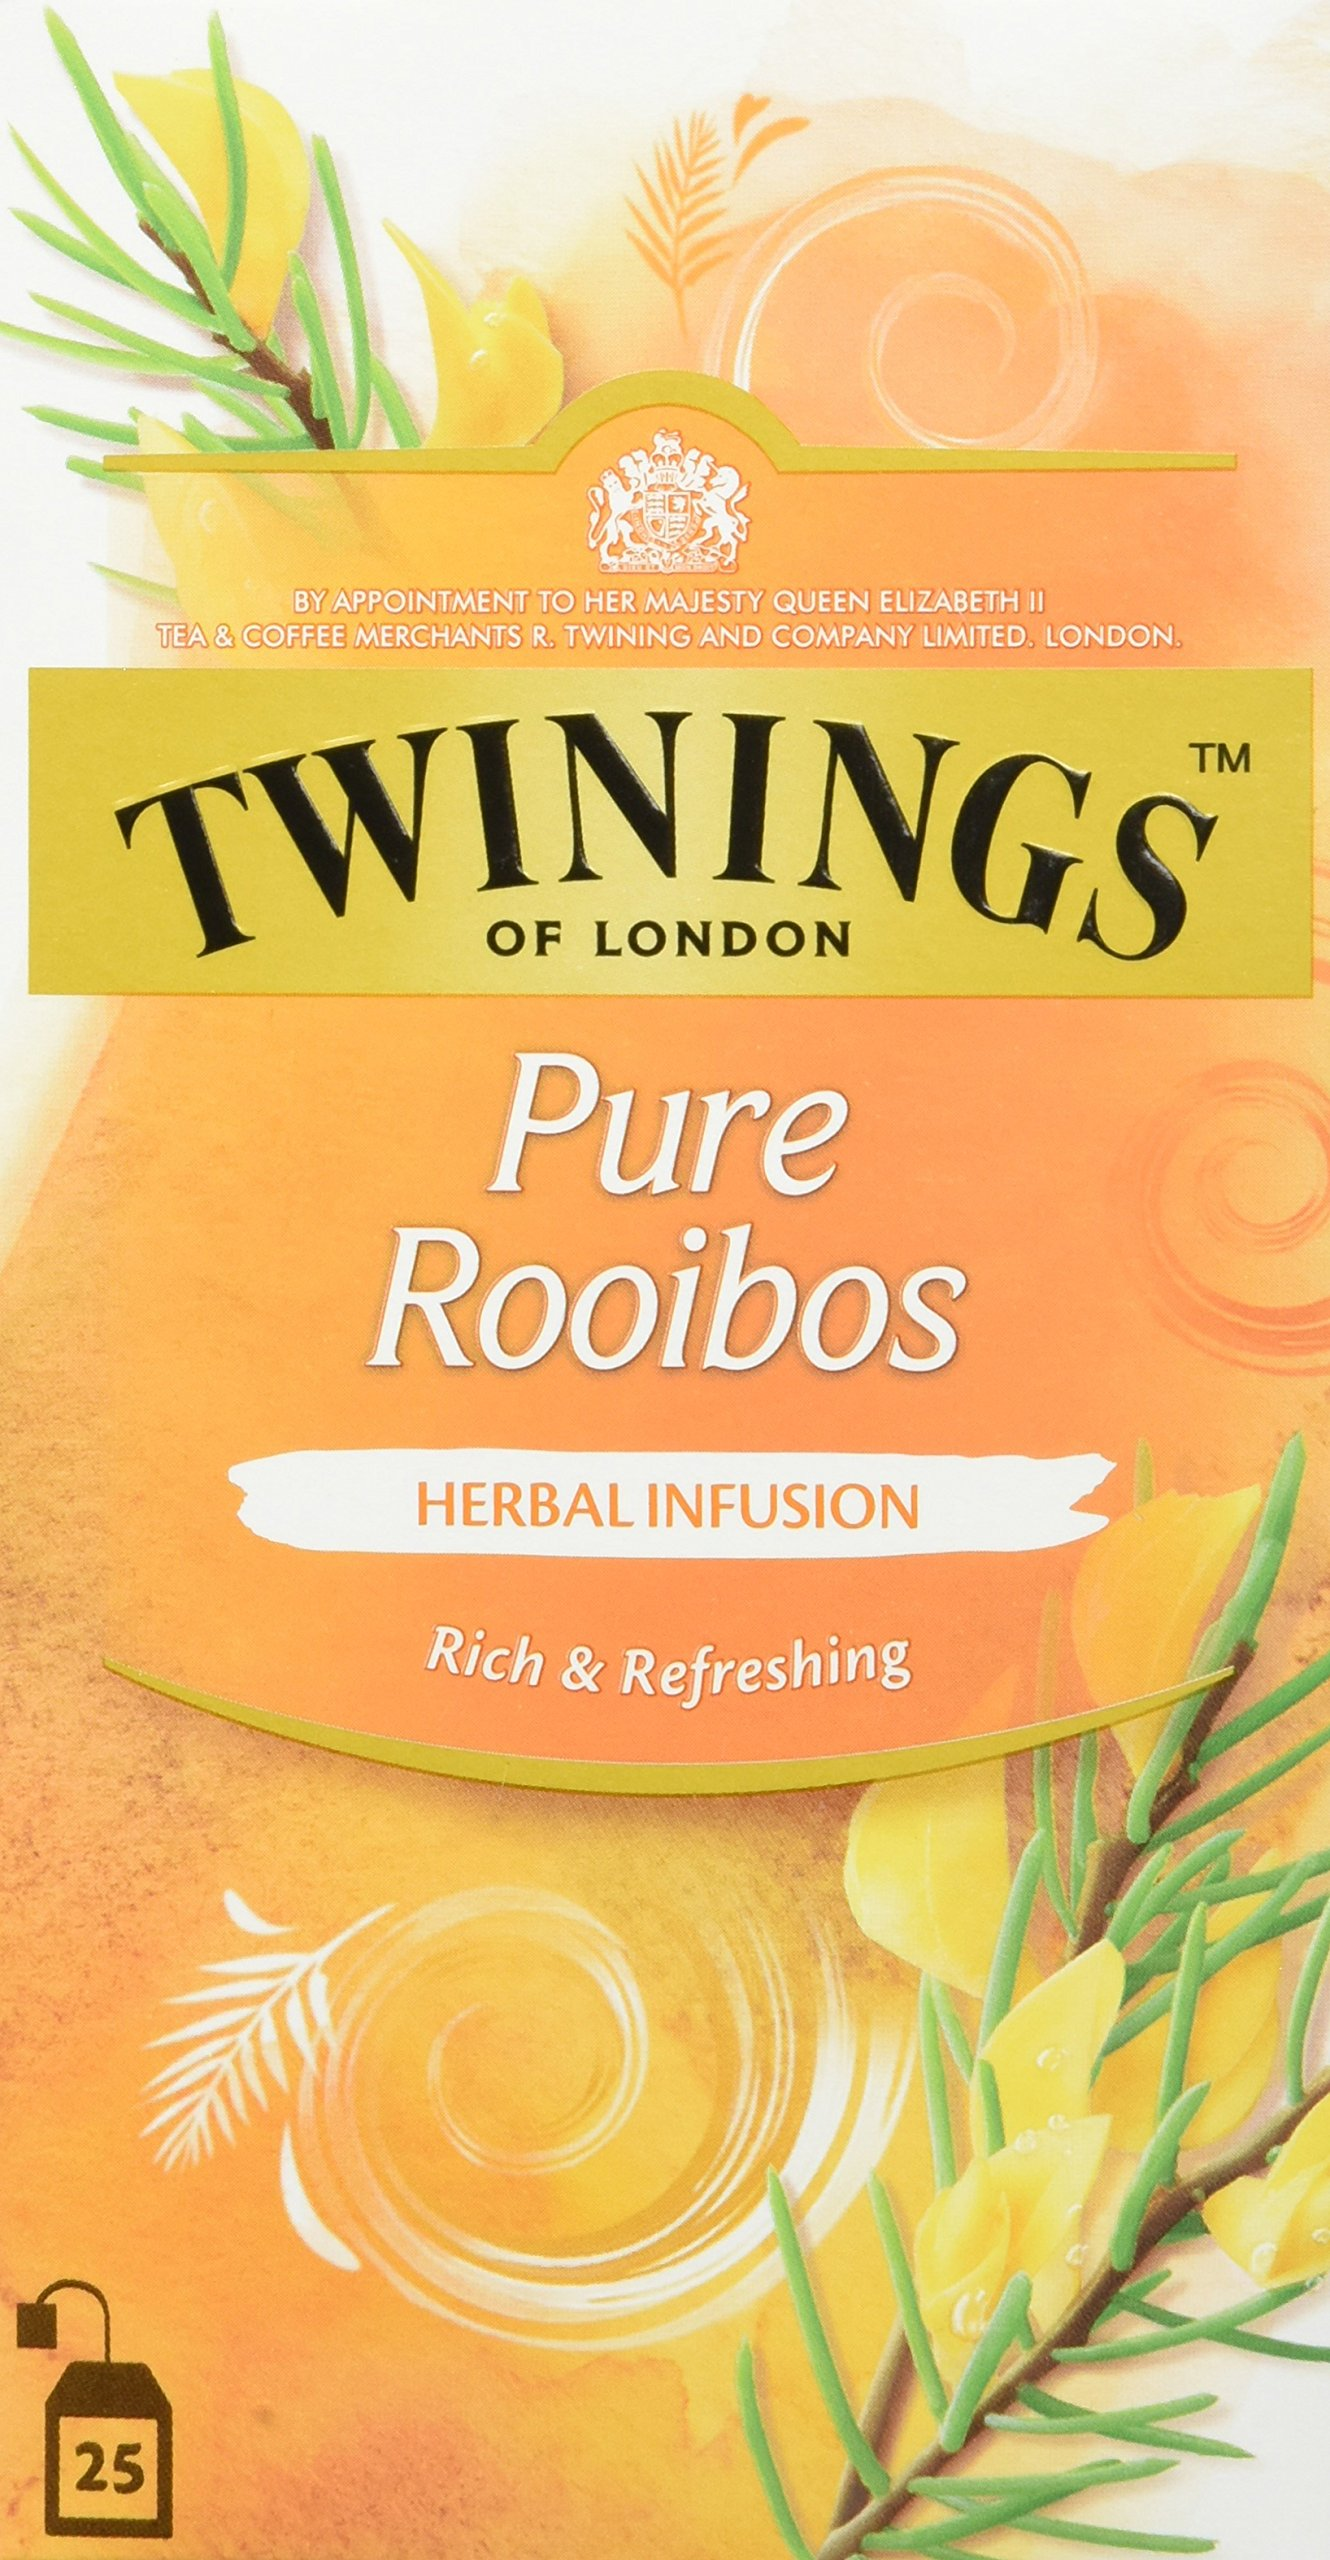 Twinings-Pure-Rooibos-25-Beutel-x-2g-50g-1-x-50-g-parent